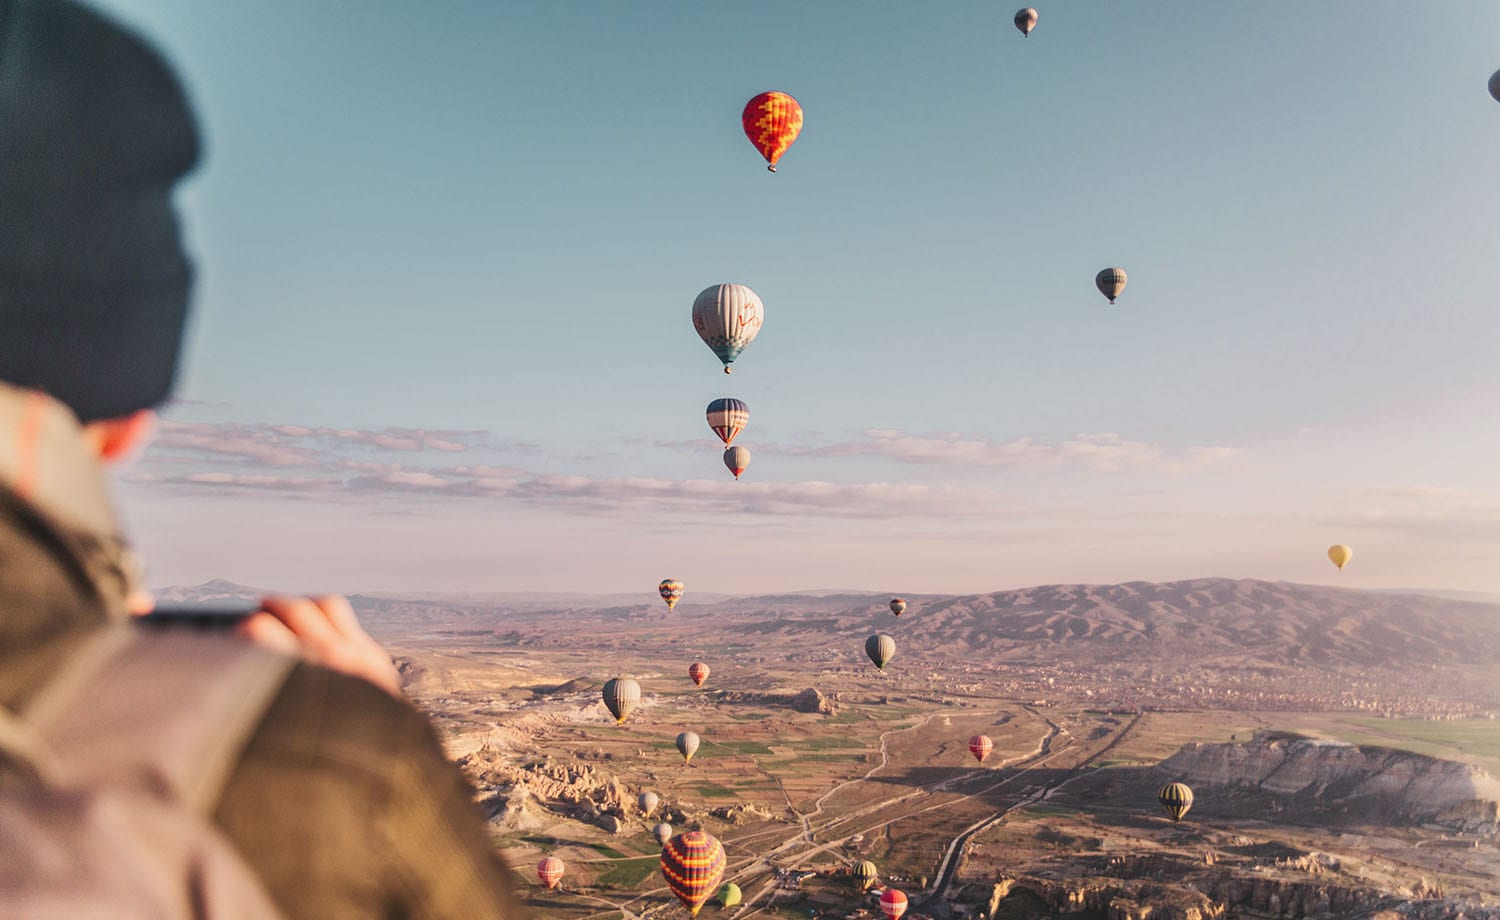 Magical: Hot air ballooning in Cappadocia, Turkey